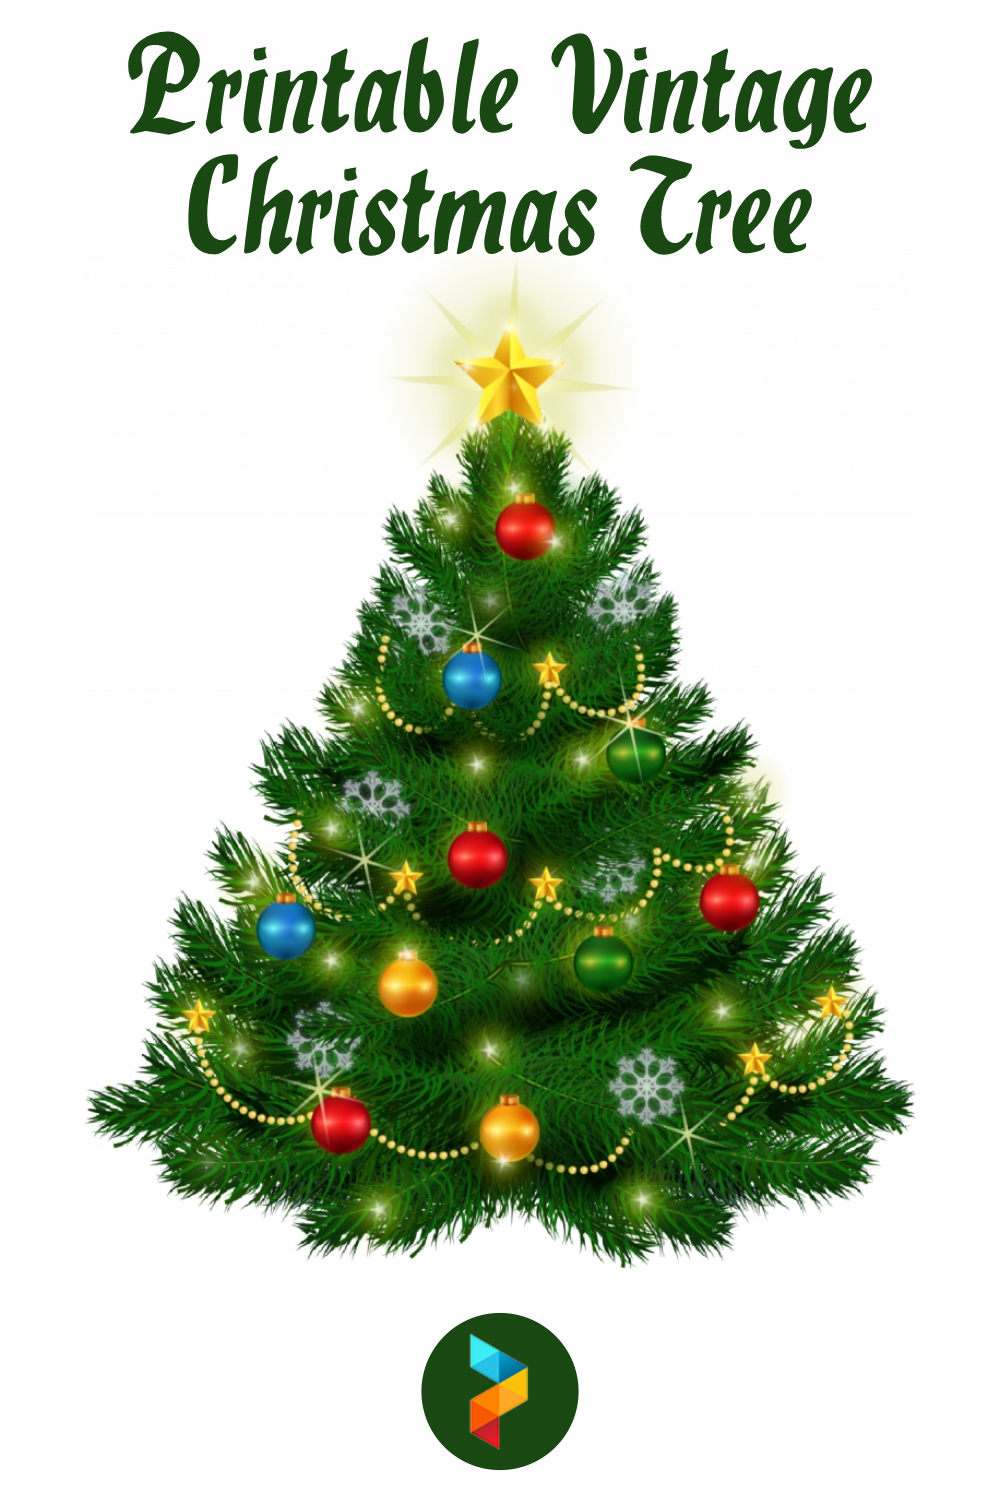 Printable Vintage Christmas Tree